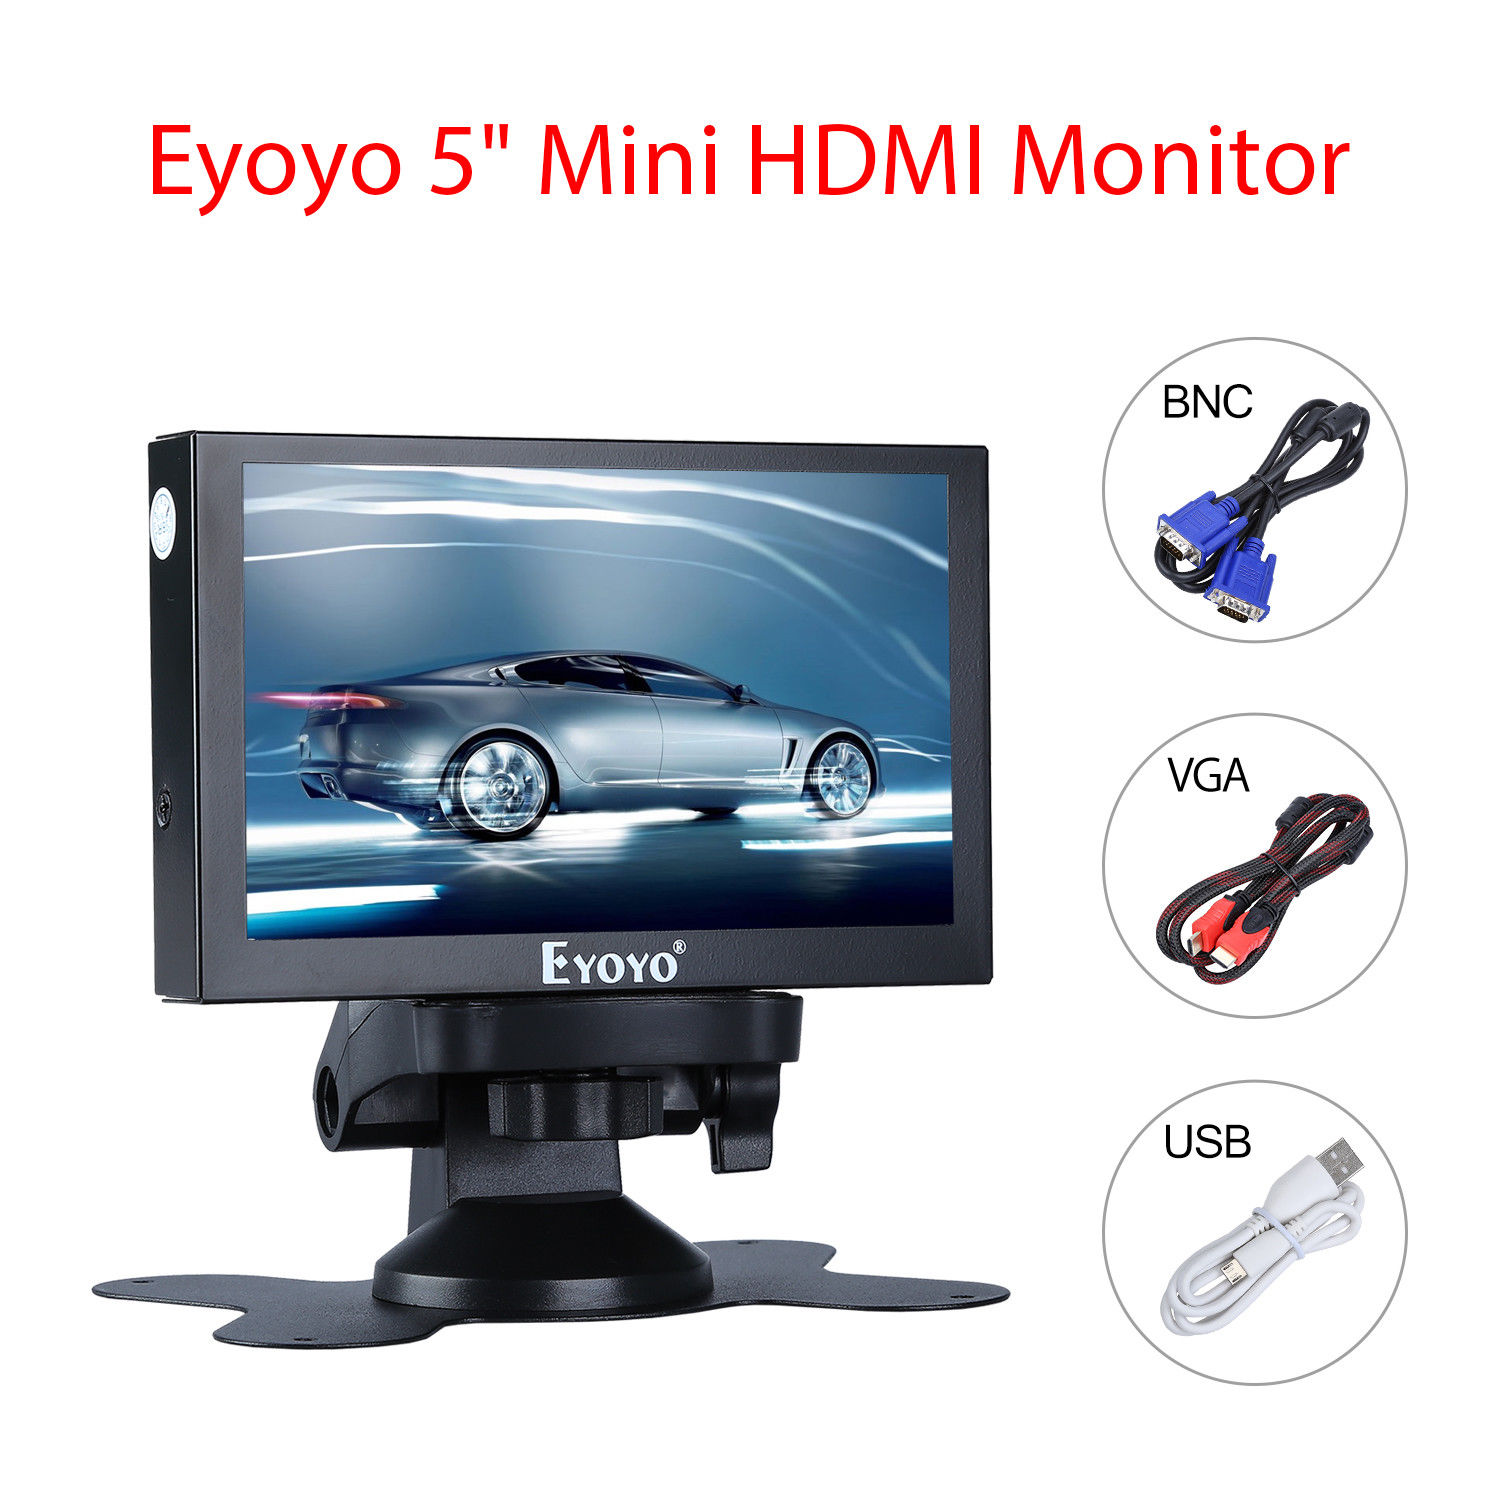 Eyoyo 5 inch Mini HDMI Monitor 800x480 Car Rear View TFT LCD Color Screen Display With BNC/VGA/AV/HDMI Output Built-in Speaker 8 inch hdmi touch monitor 1024x768 resolution display portable 4 3 tft lcd mini hd color video screen monitor with hdmi vga bnc